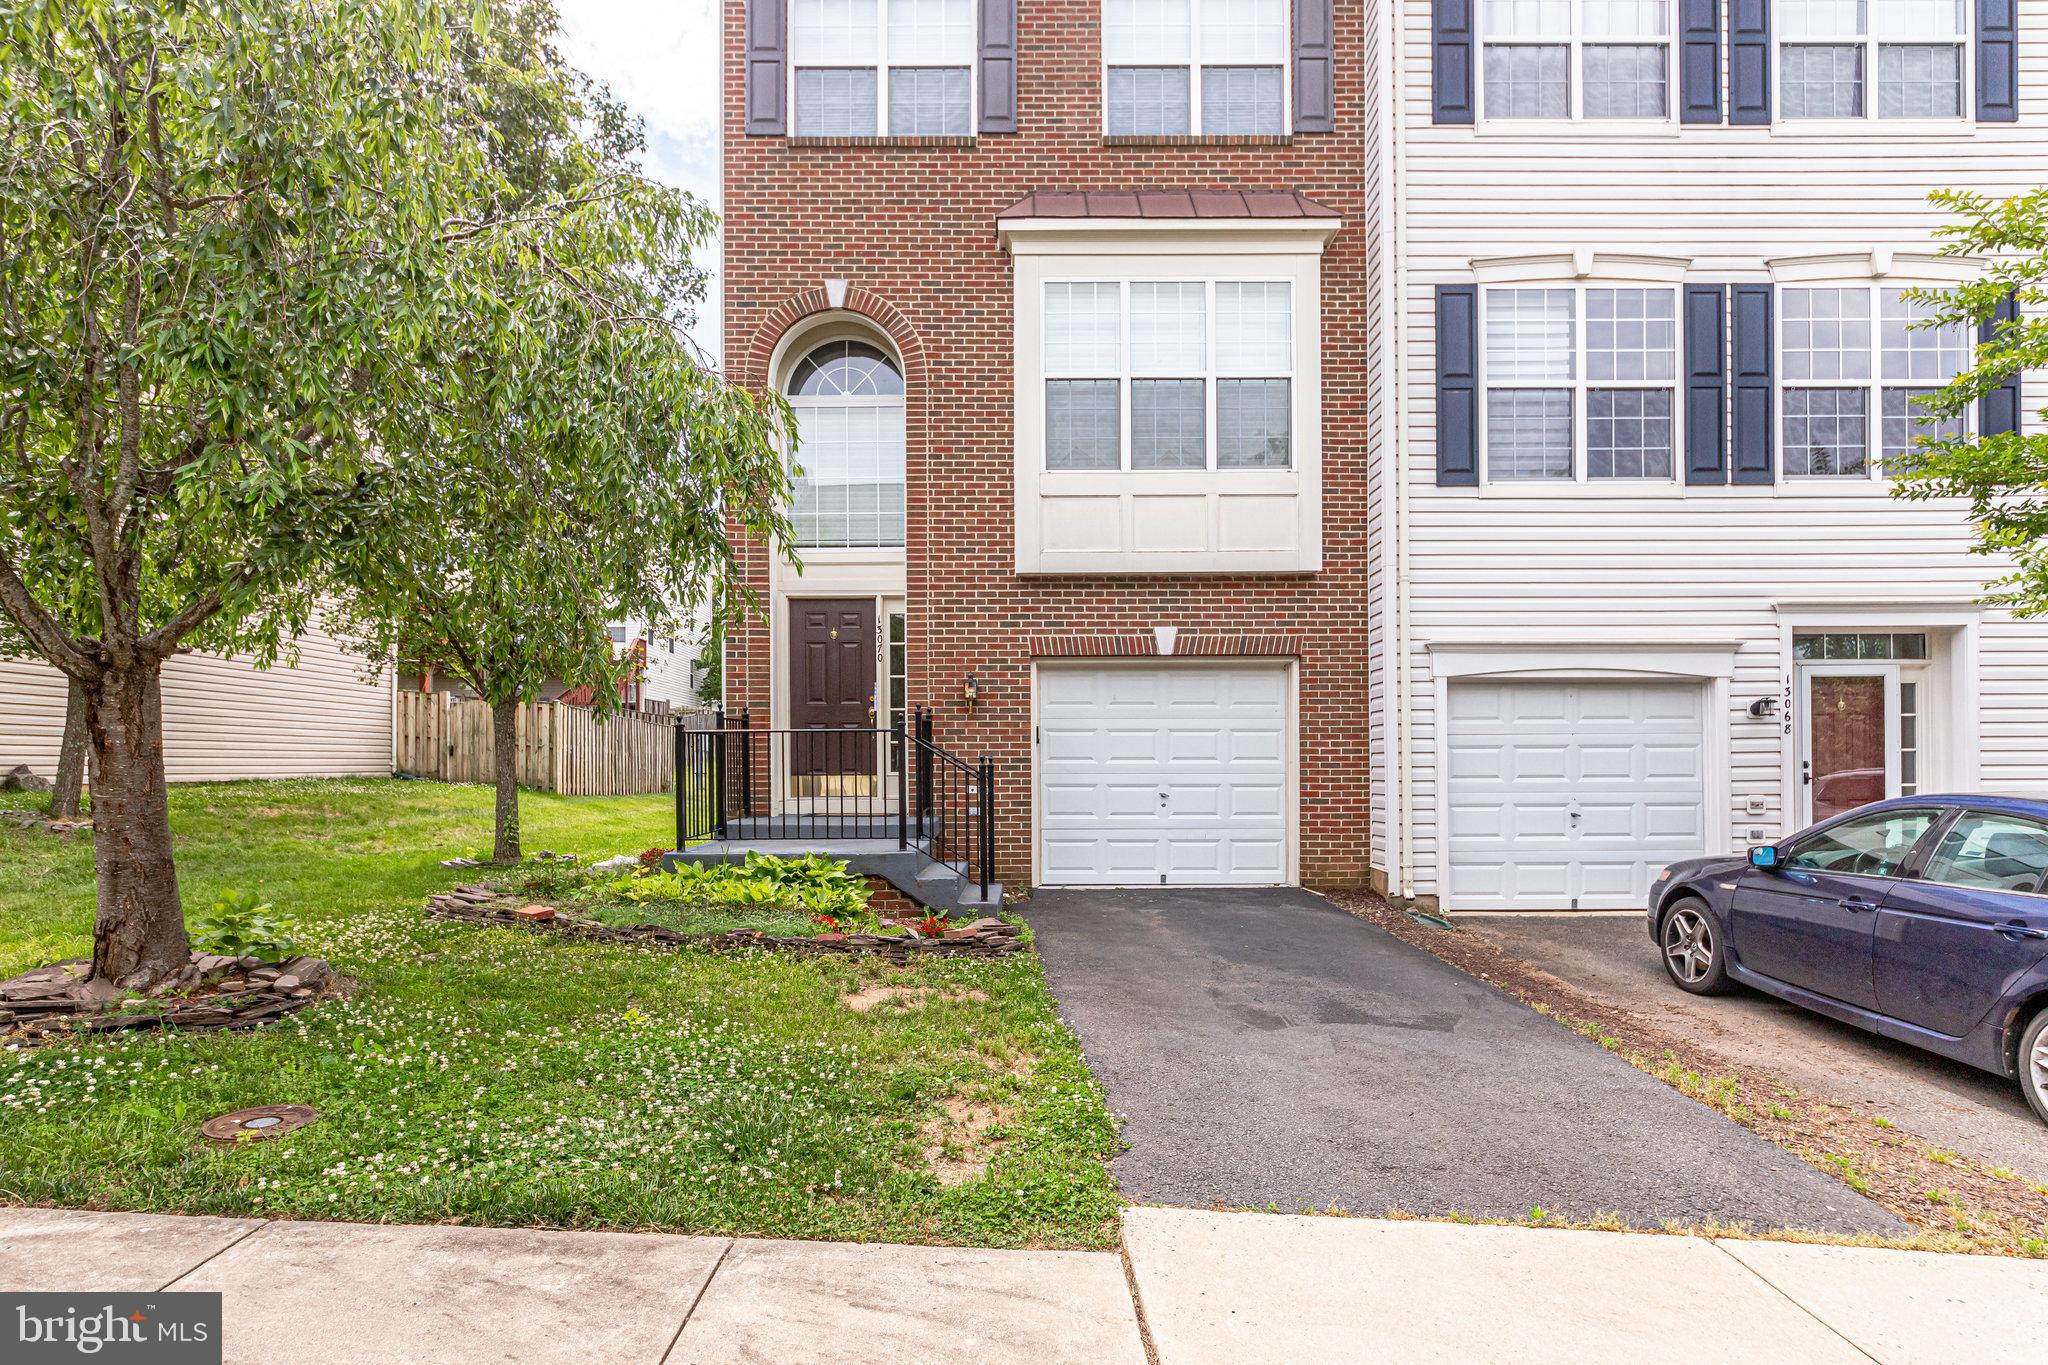 Please follow all COVID-19 guidelines. Excellent Colonial Townhouse, 3 BR, 2 1/2 baths. End unit wit